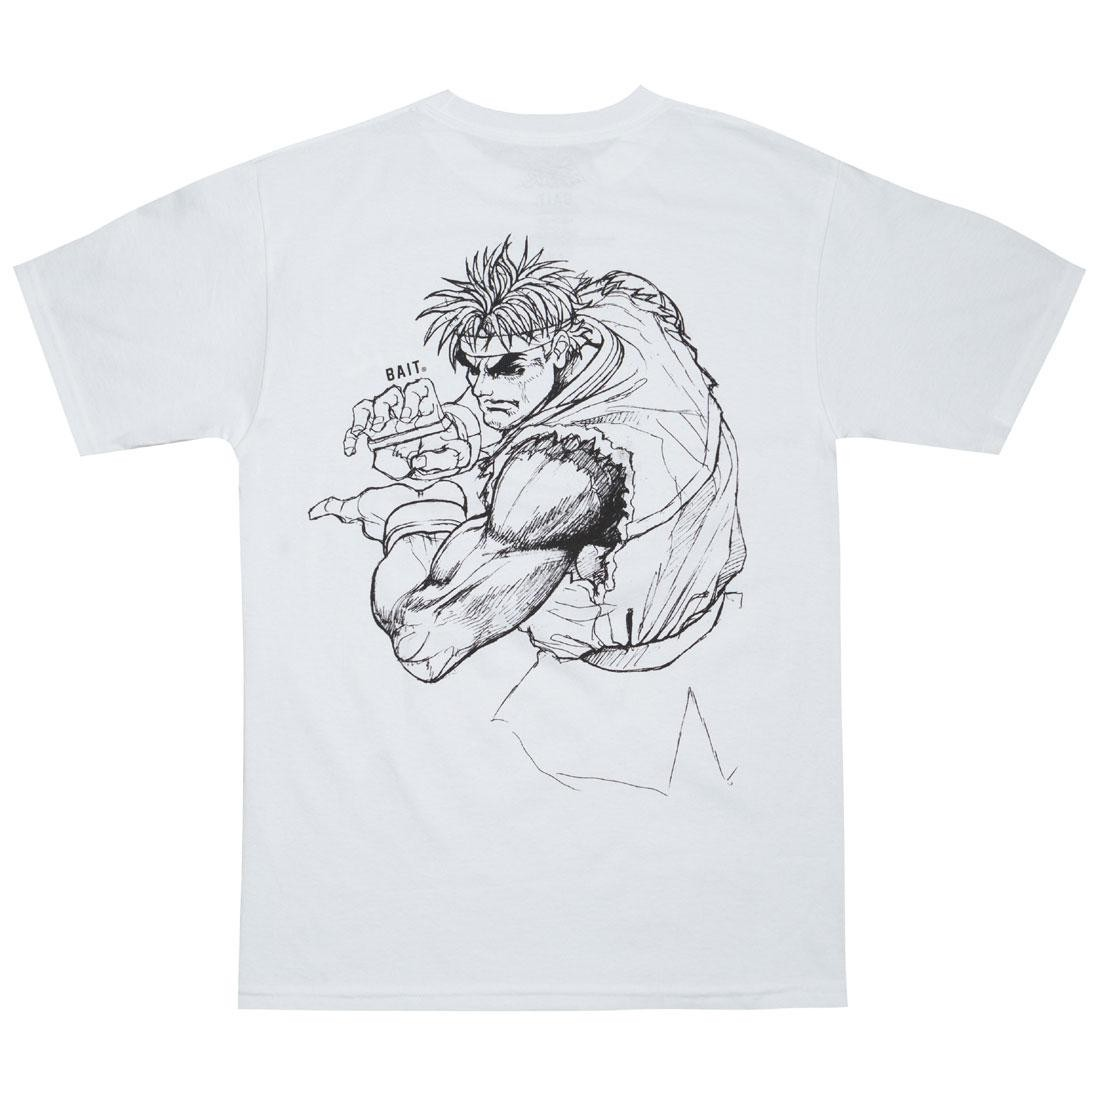 BAIT x Street Fighter Men Ryu Sketch Tee (white)